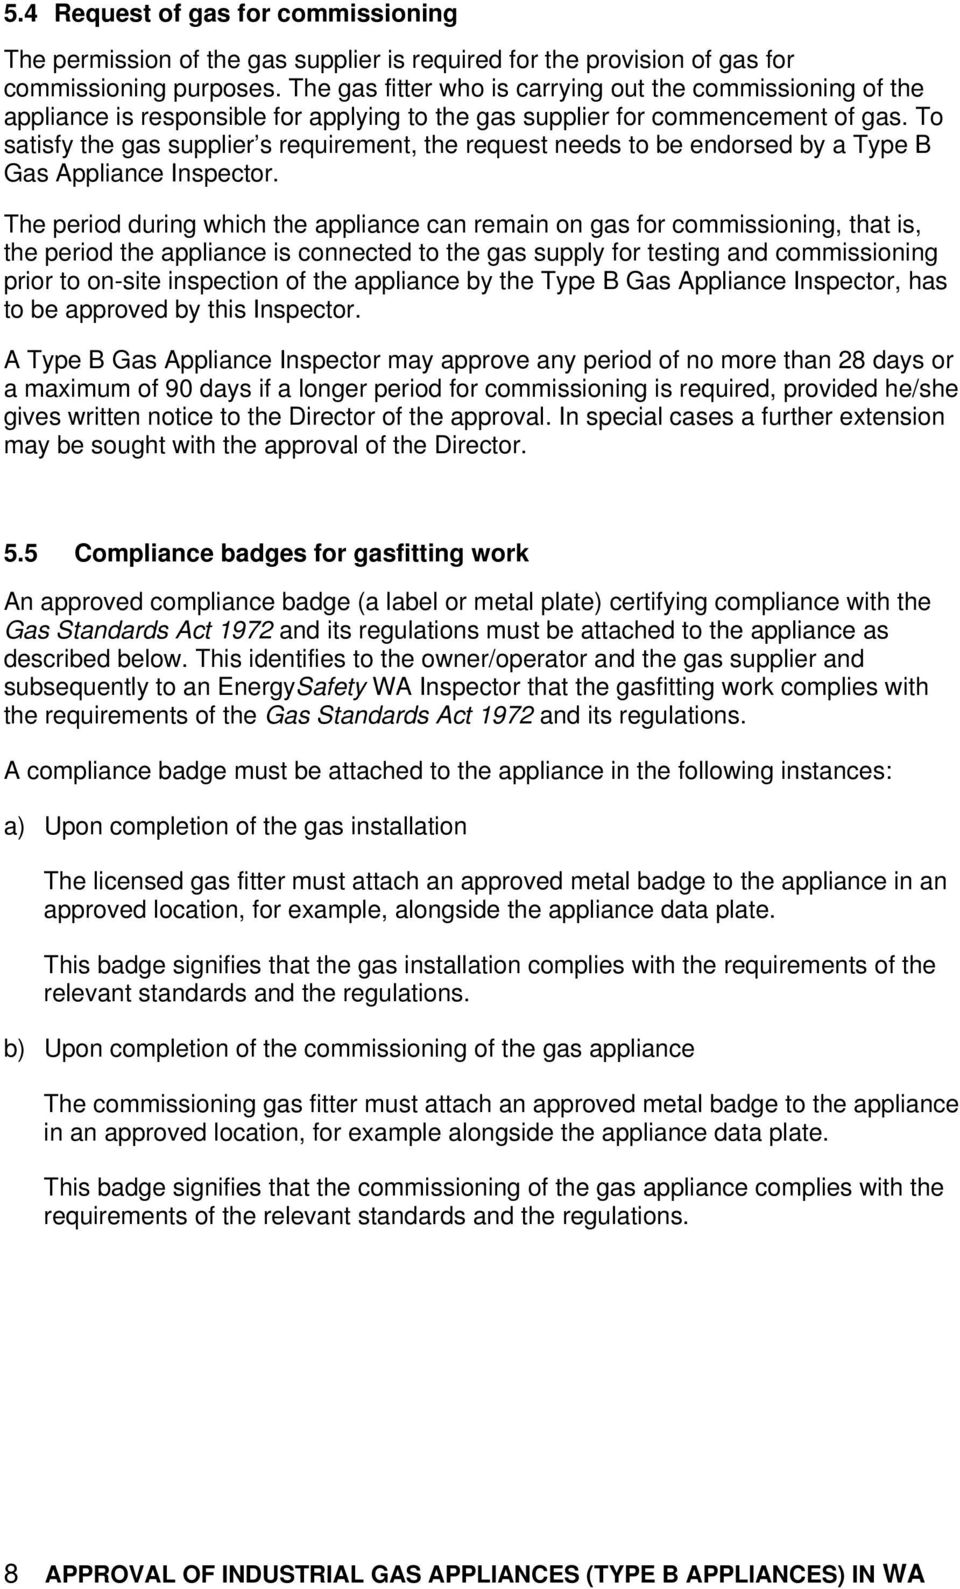 To satisfy the gas supplier s requirement, the request needs to be endorsed by a Type B Gas Appliance Inspector.